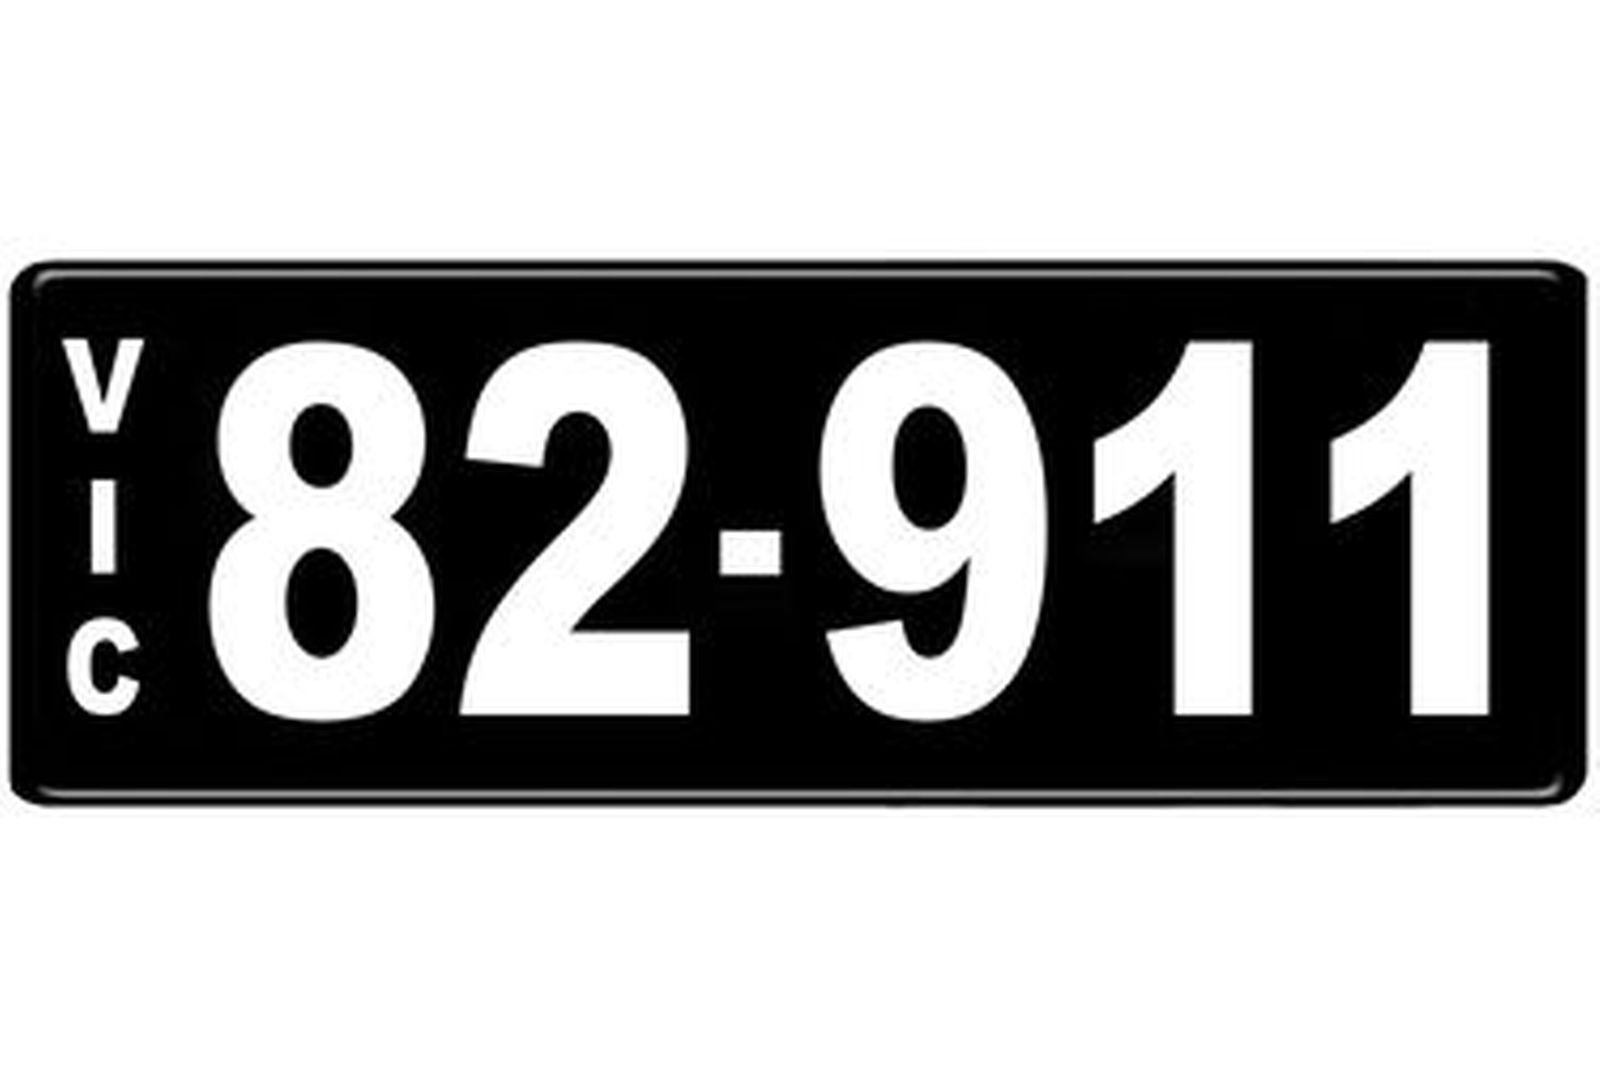 Number Plates - Victorian Numerical Number Plates '82.911'